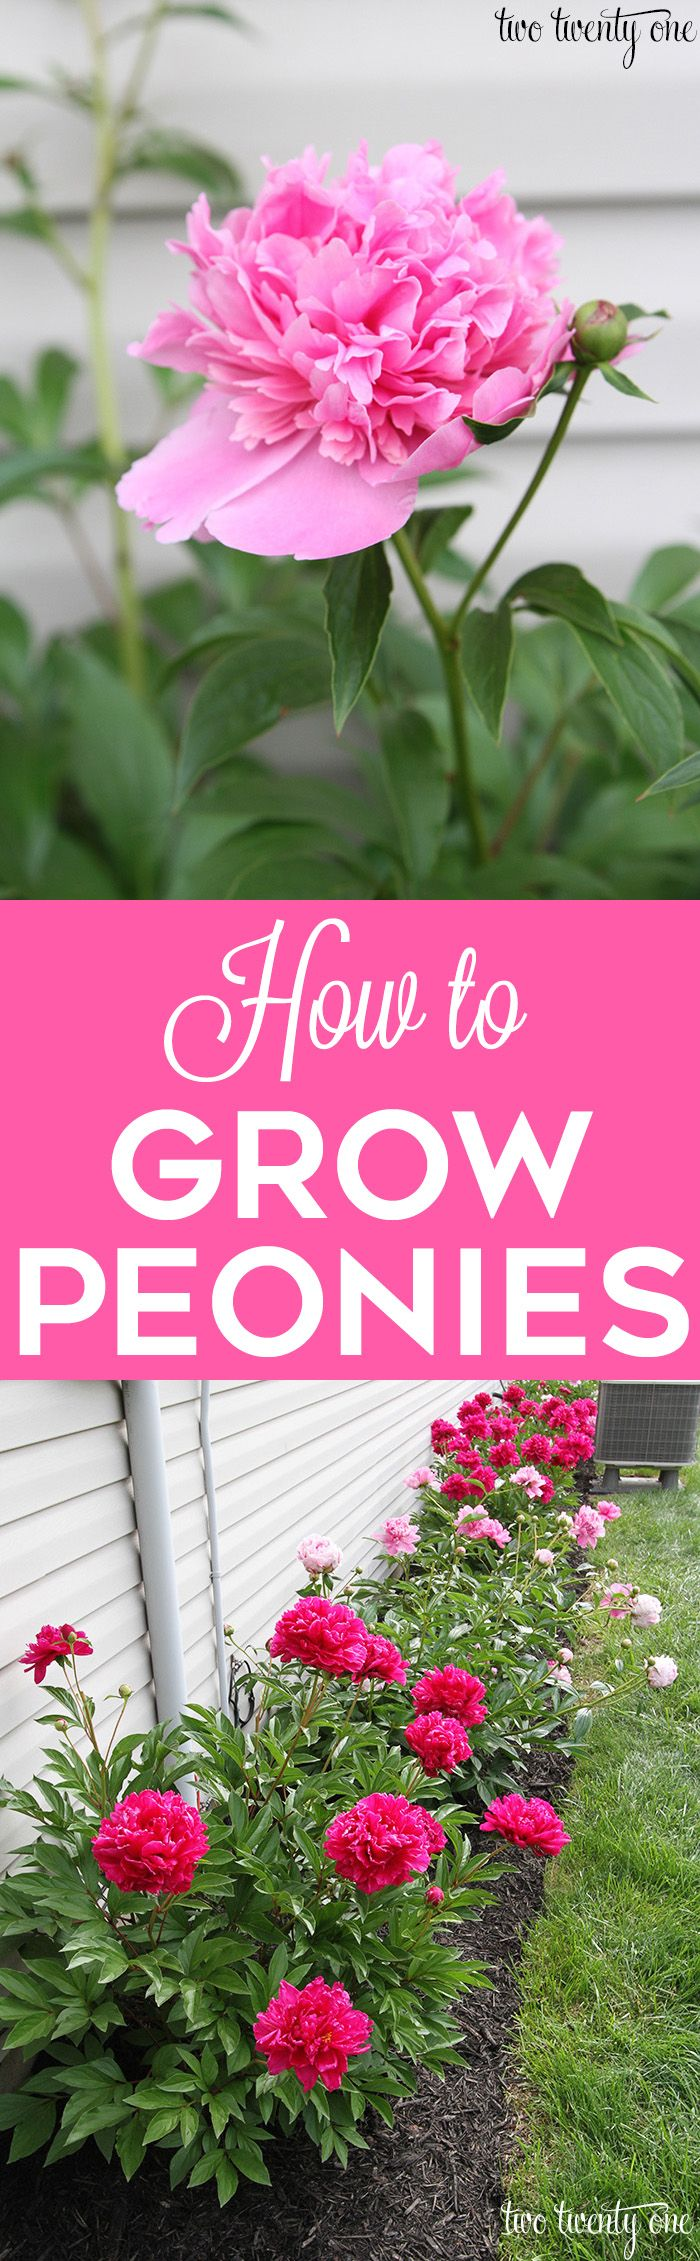 GREAT tips on how to grow peonies! http://twotwentyone.net/growing-peonies/